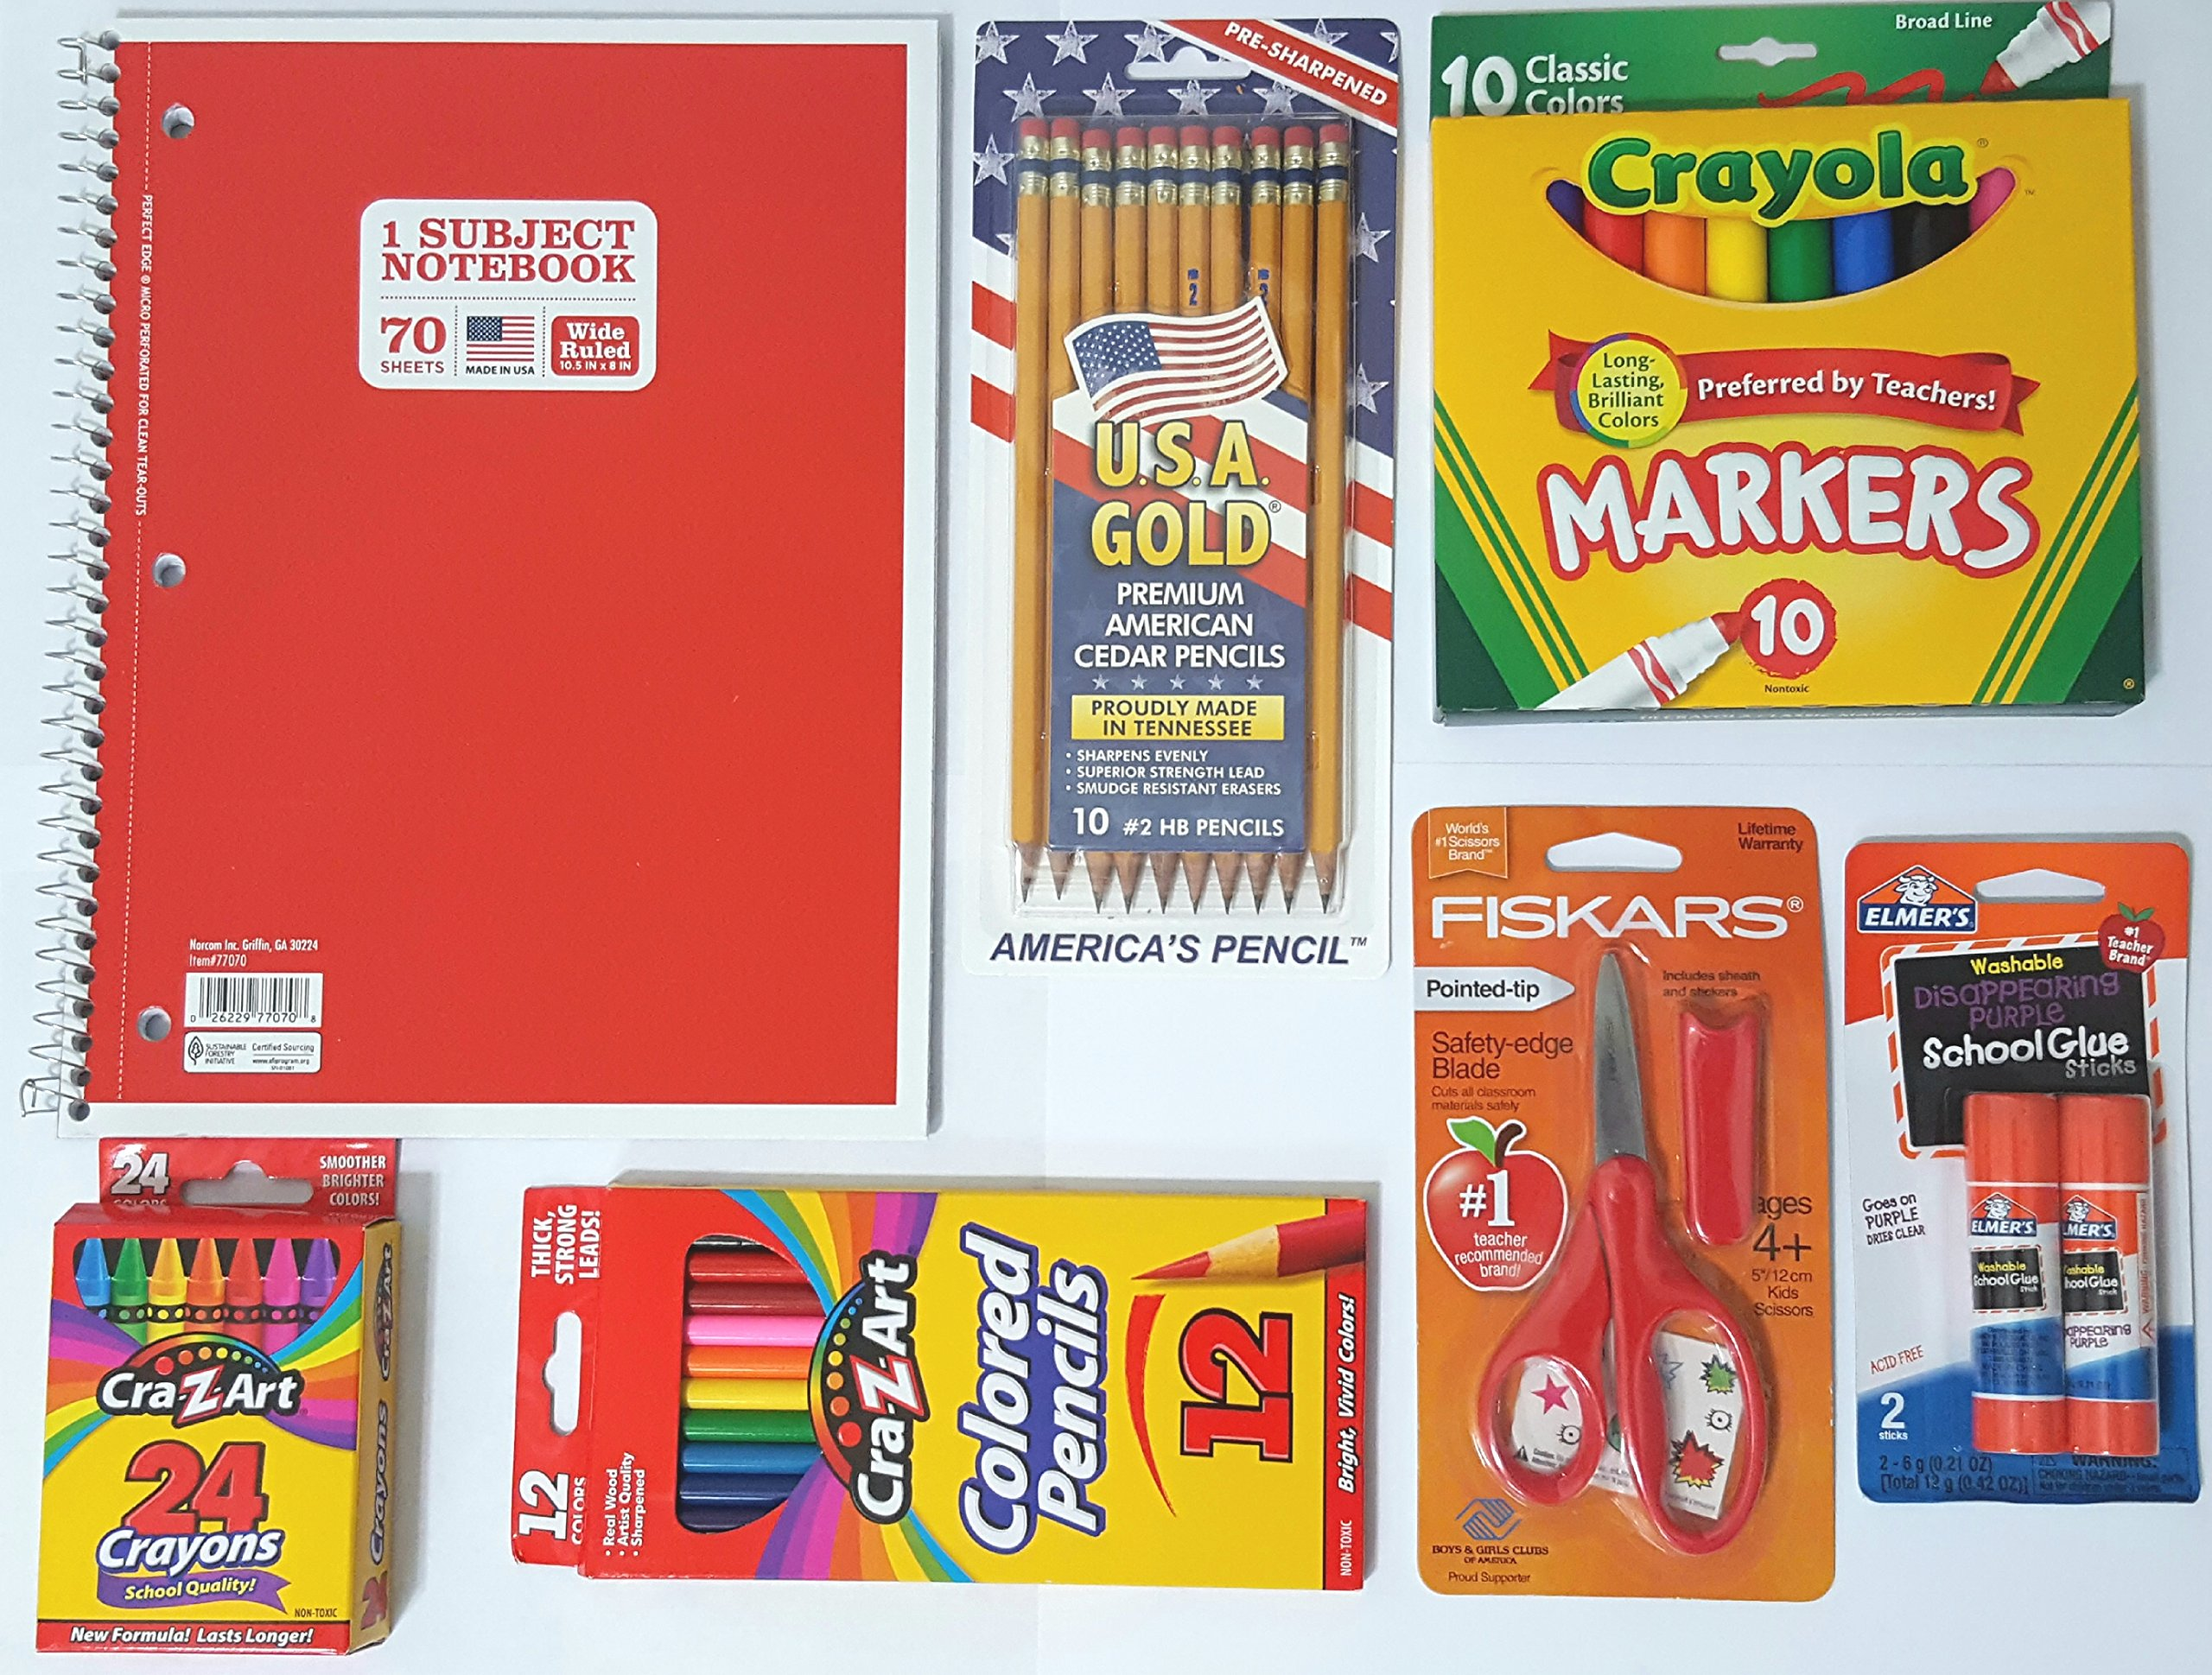 Basic School Supply Bundle, 1x Subject Notebook, U.S.A Gold #2 Pencil (10ct), Crayola 10 Ct Classic Marker,CRA-Z-Art Crayons, Elmer's Glue Sticks, CRA-Z-Art Colored Pencils, Fiskars 5 in. Scissor